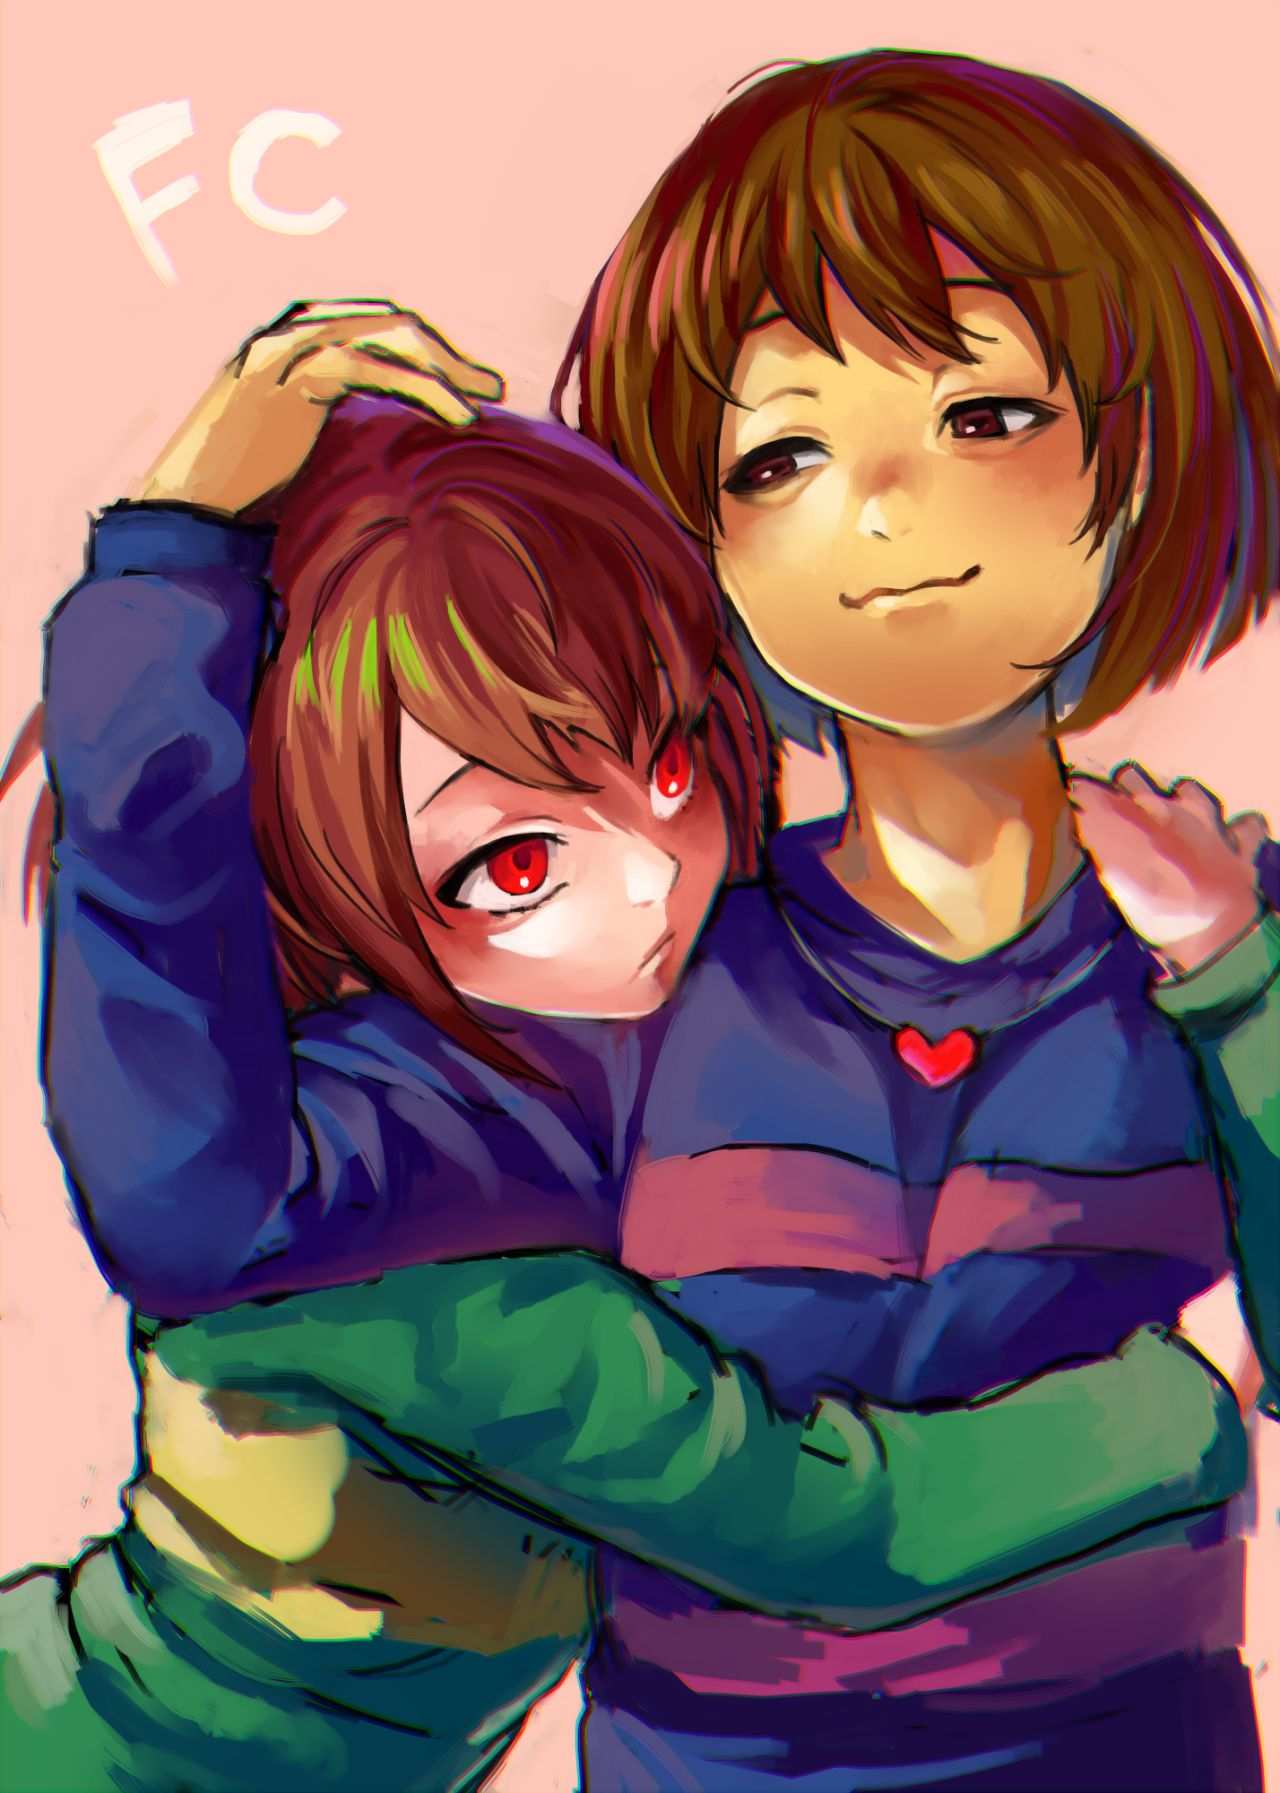 Again, I don't ship it, but this is really good fanart | Undertale